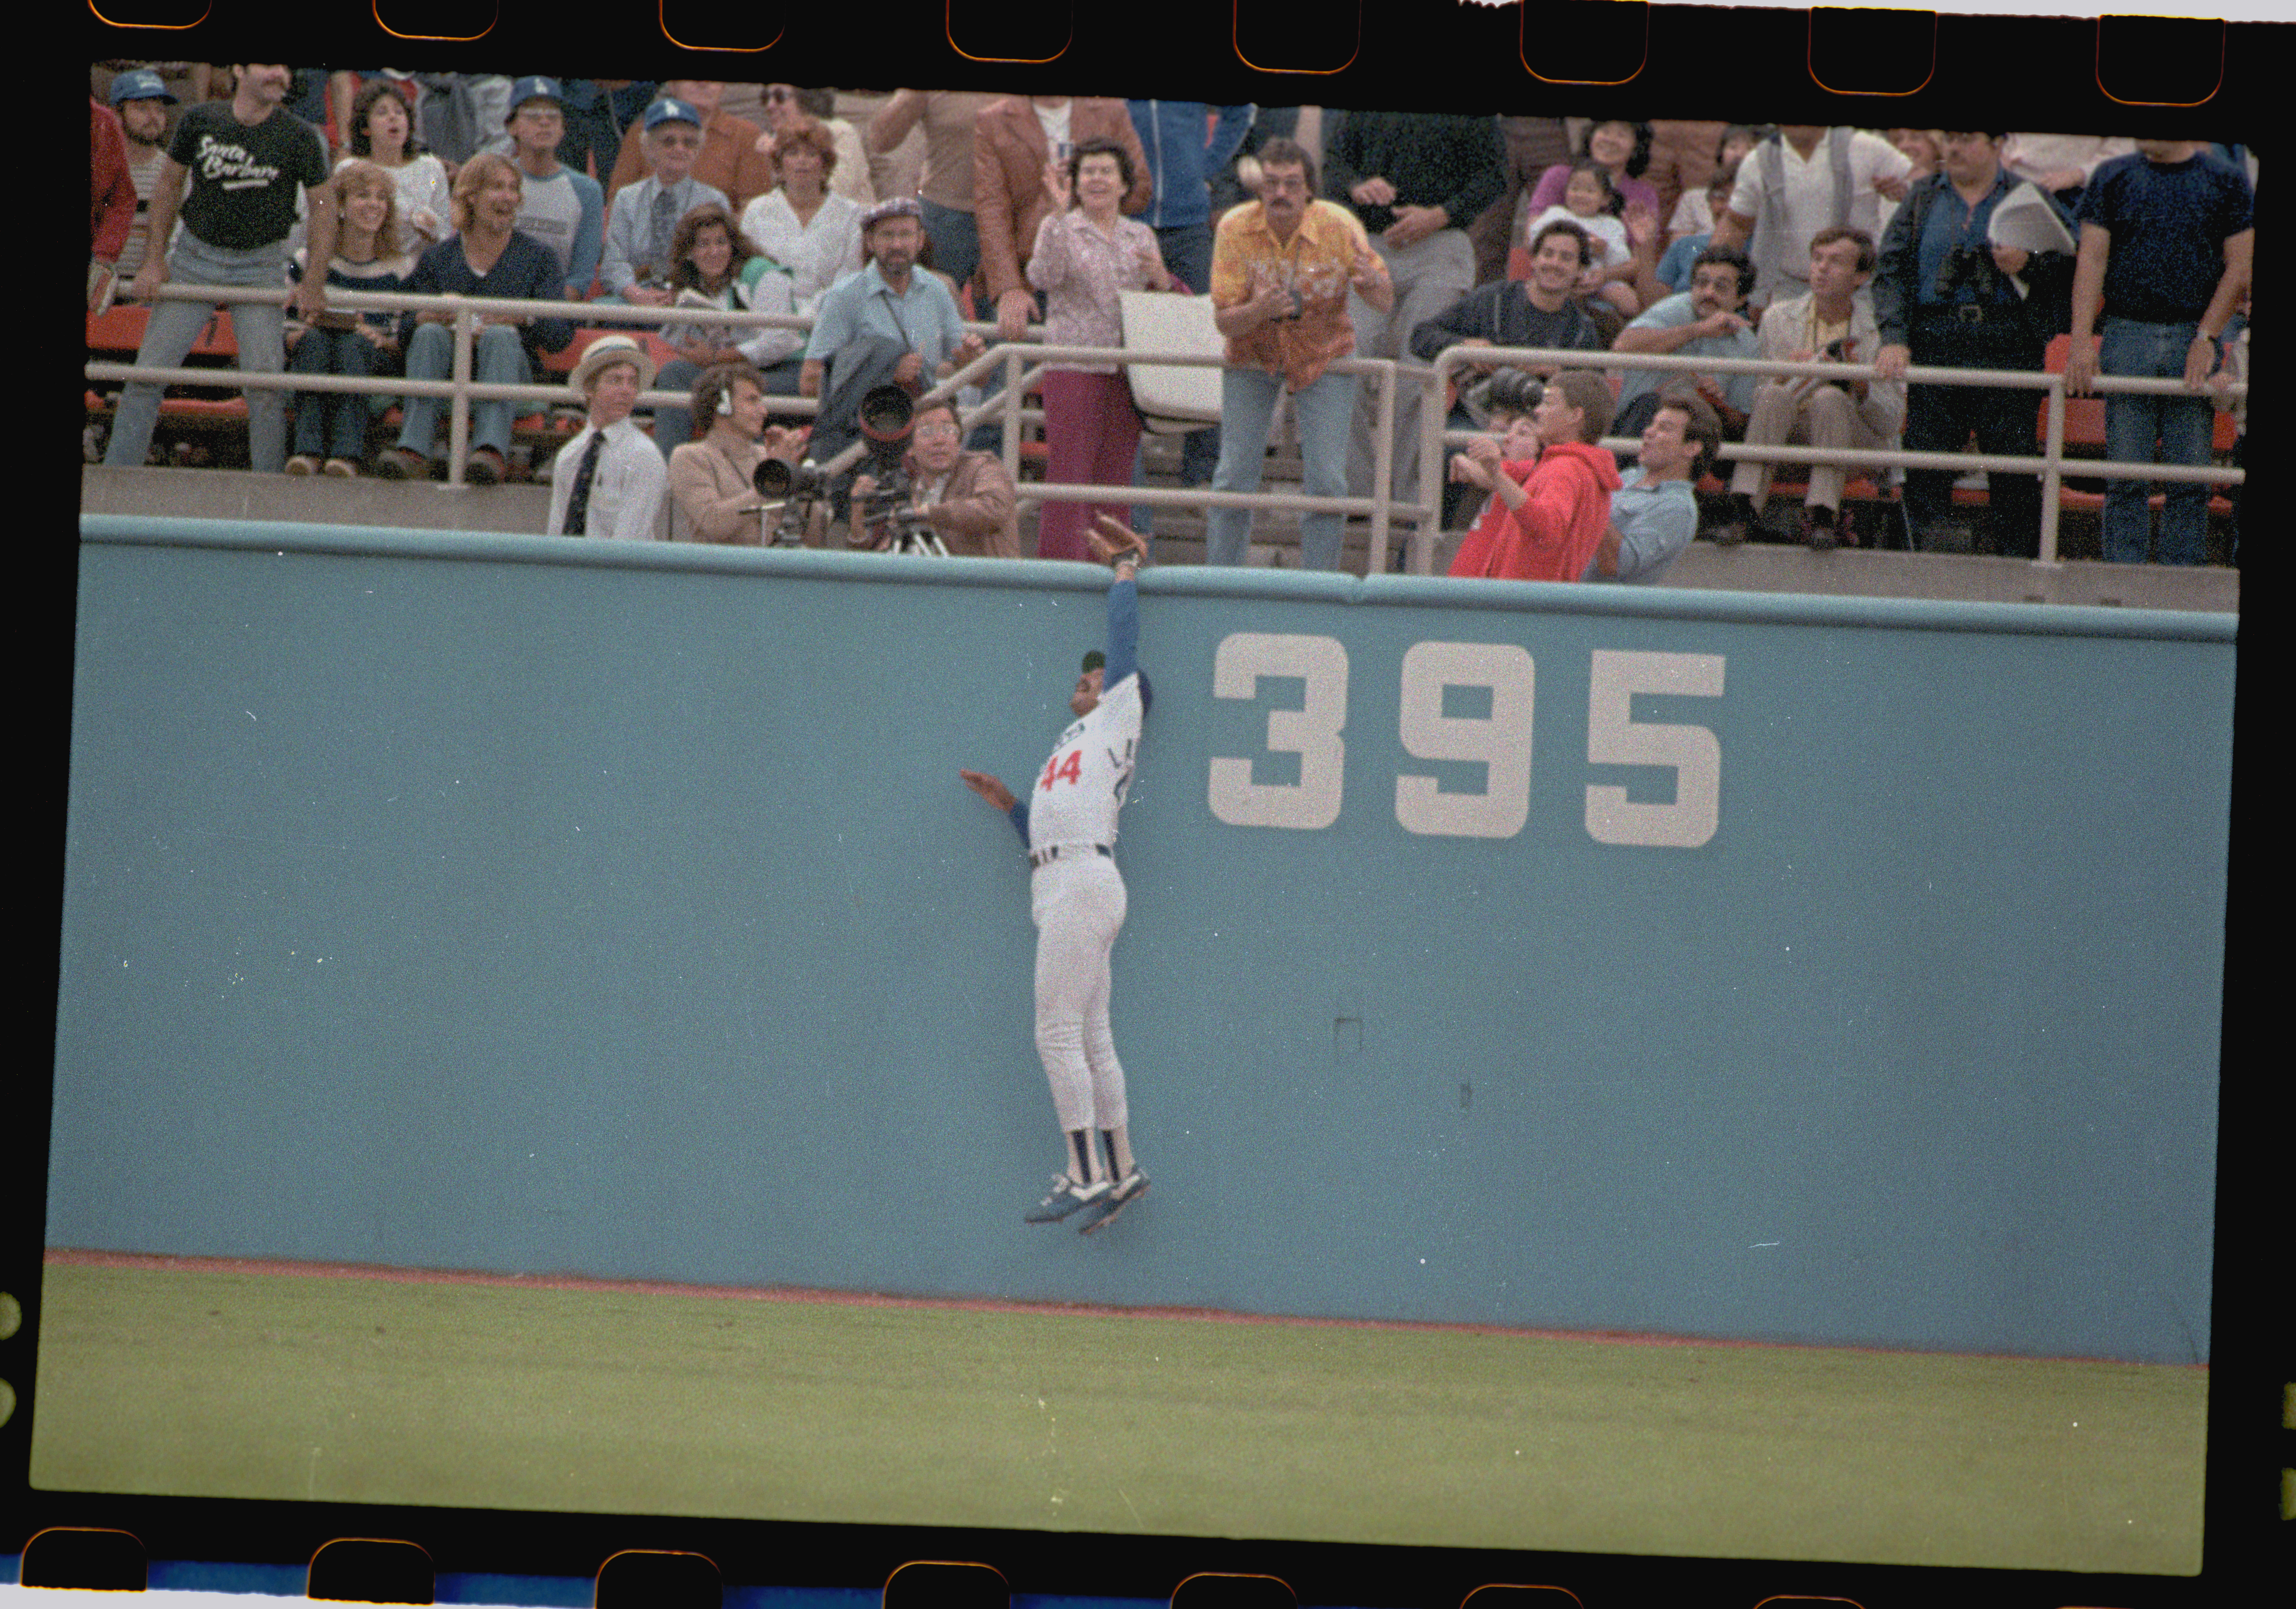 Kenny Landreaux Going up to Catch Ball